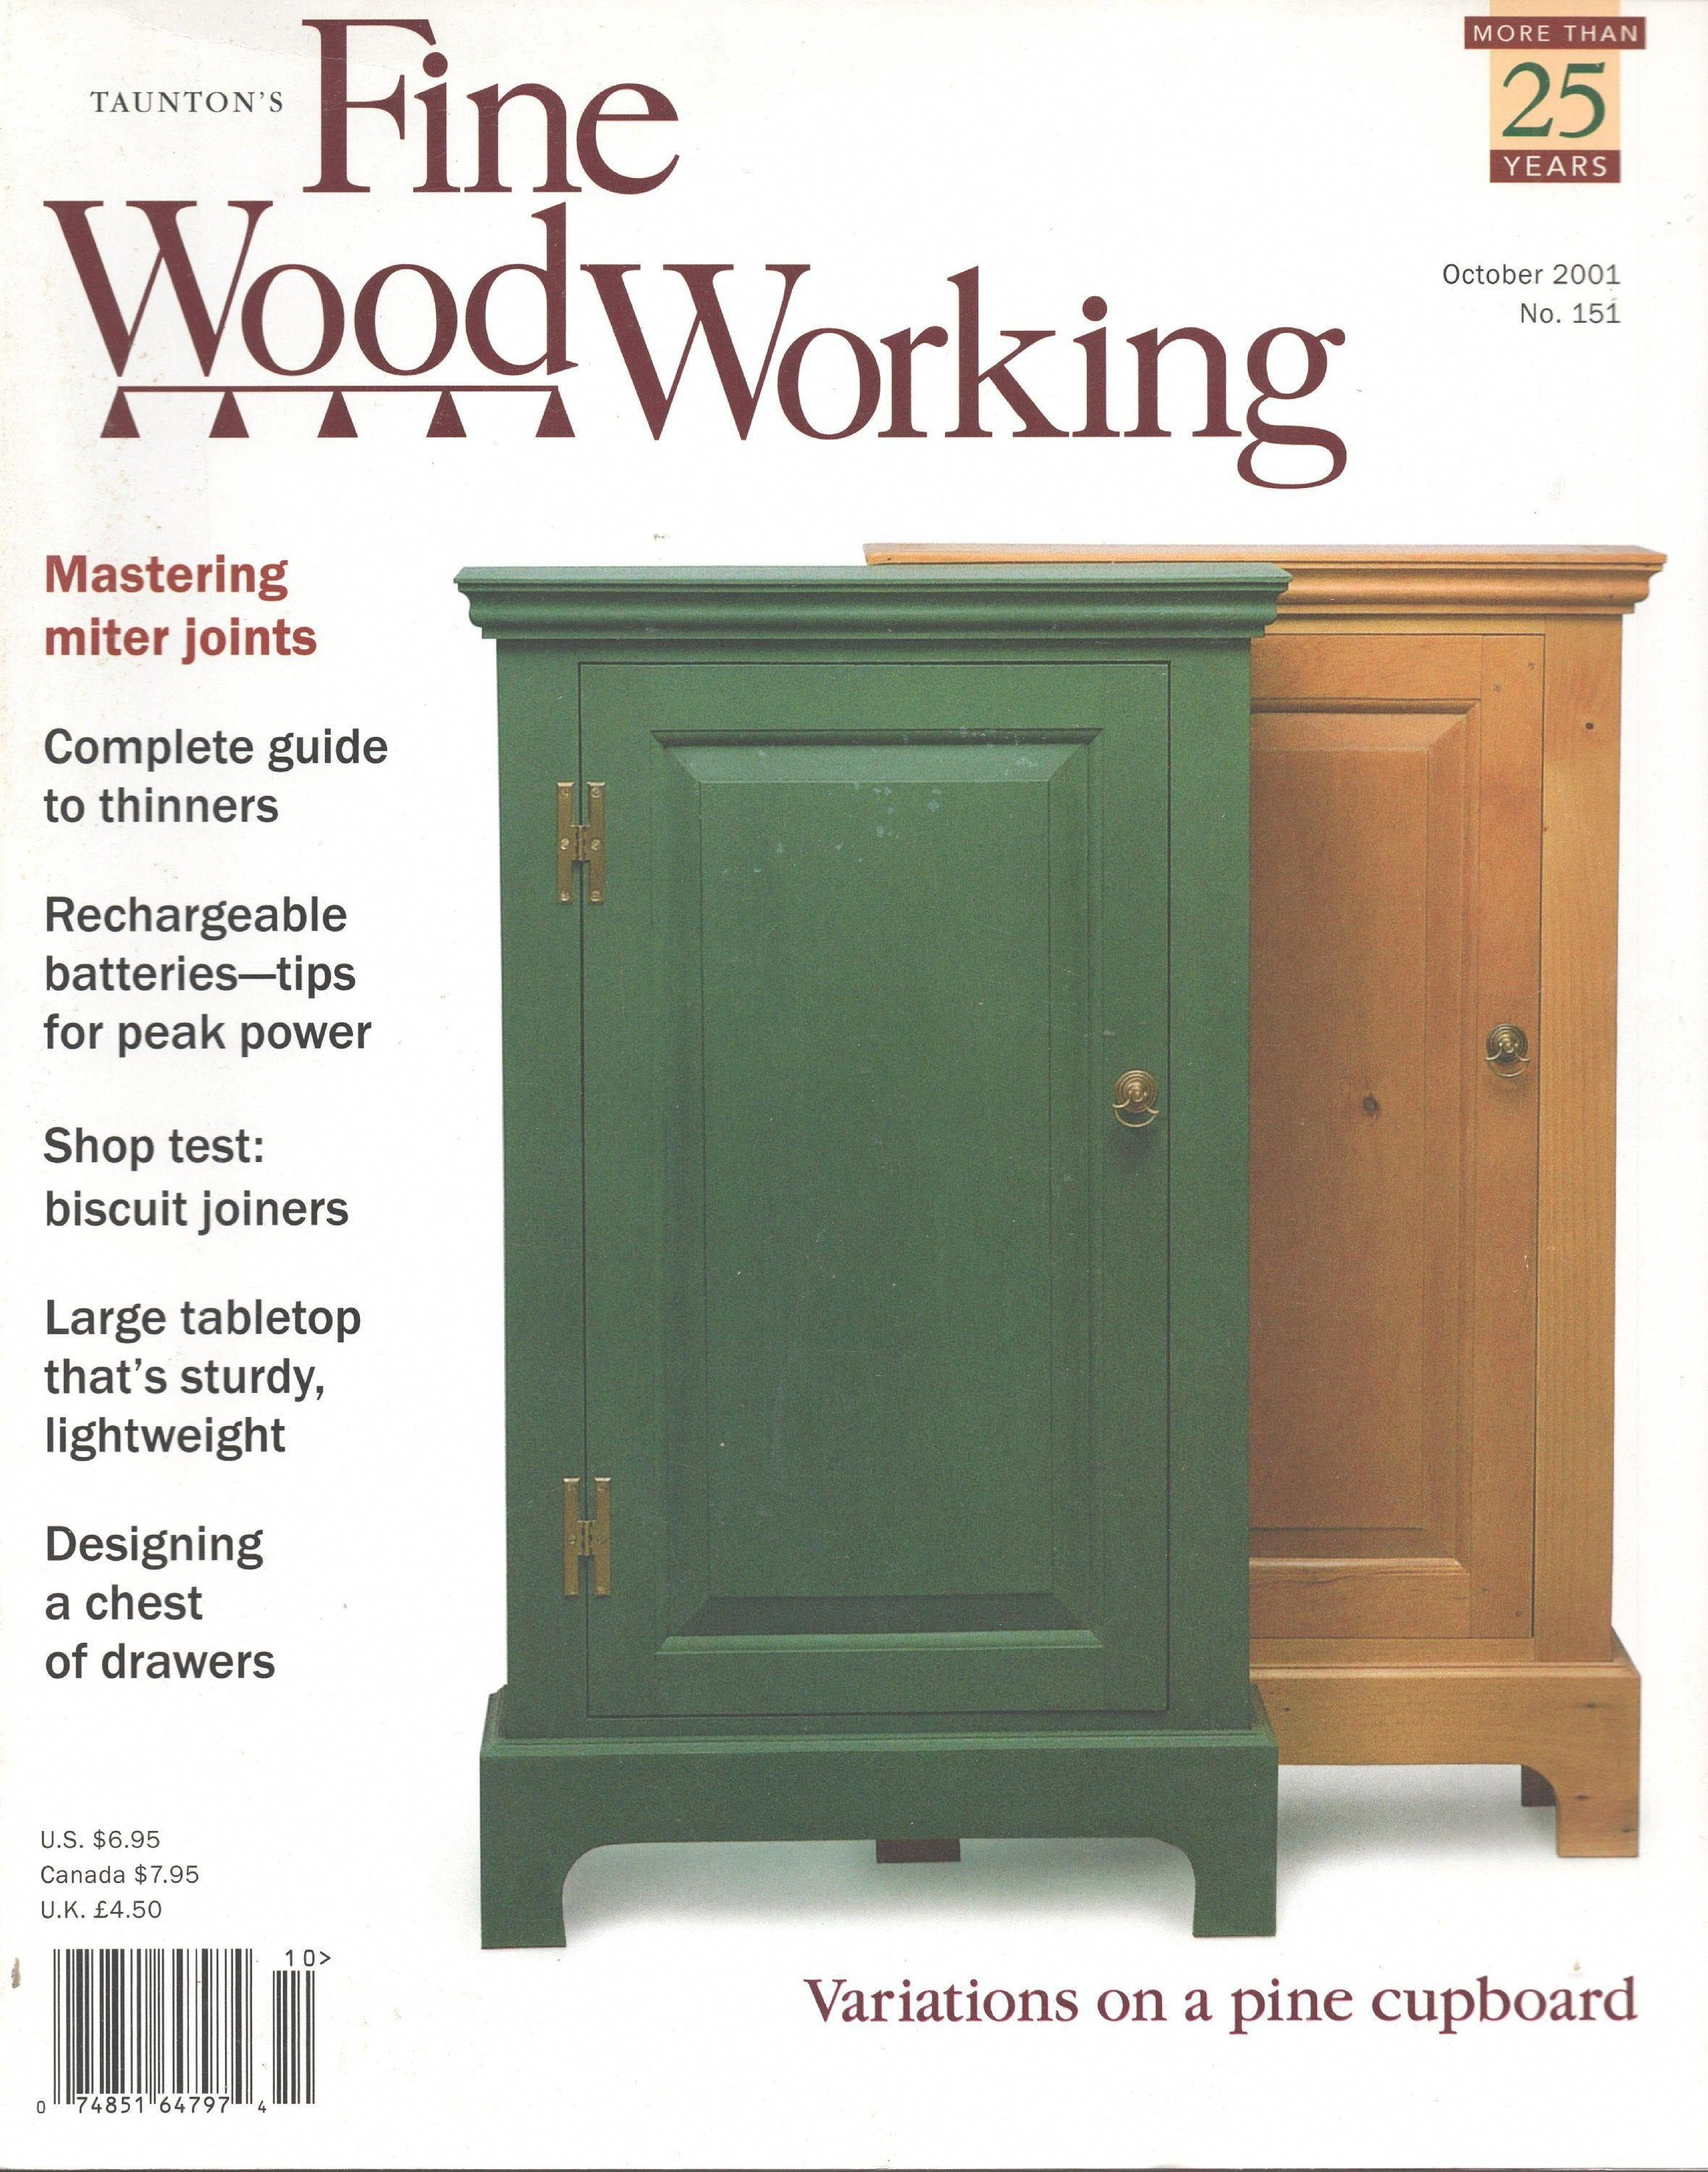 Fine Woodworking Magazine October 2001 Good Shape Miter Joints Thinners Batteries Biscuit In 2020 Fine Woodworking Magazine Woodworking Magazine Fine Woodworking